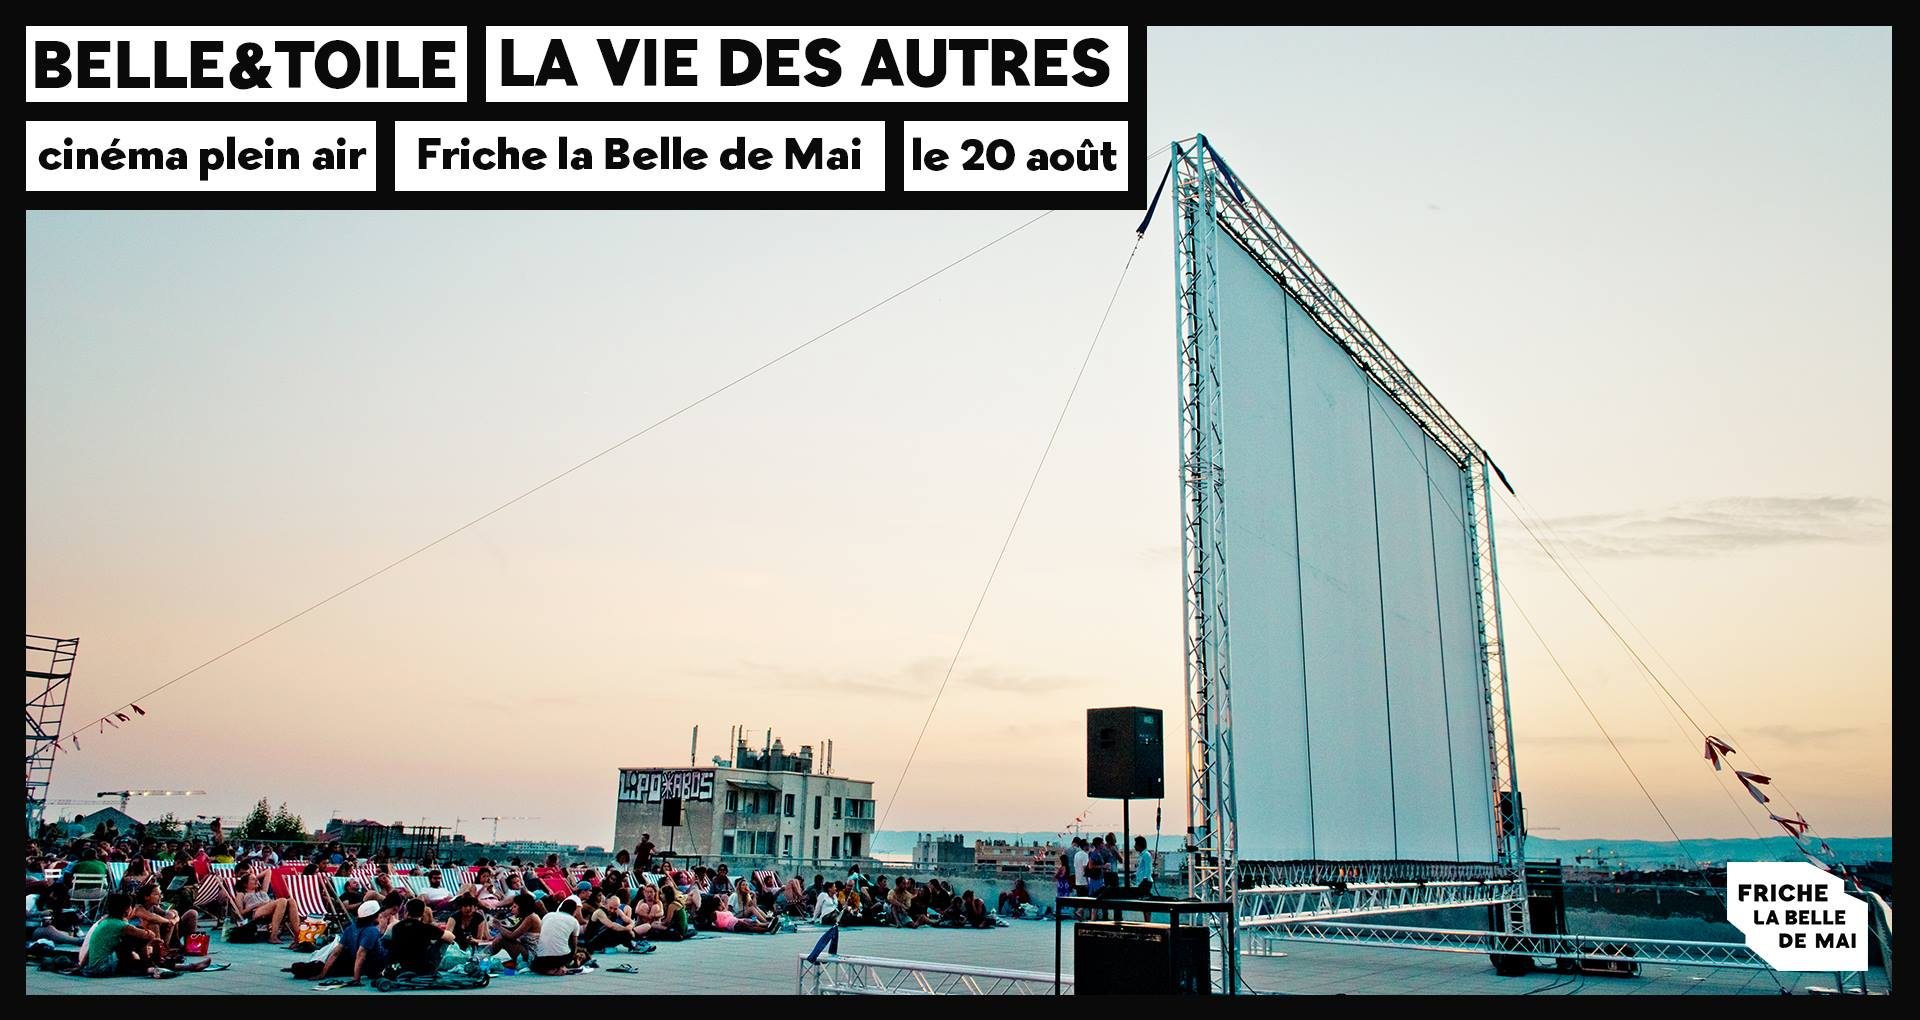 belle&toile cinema plein air marseille